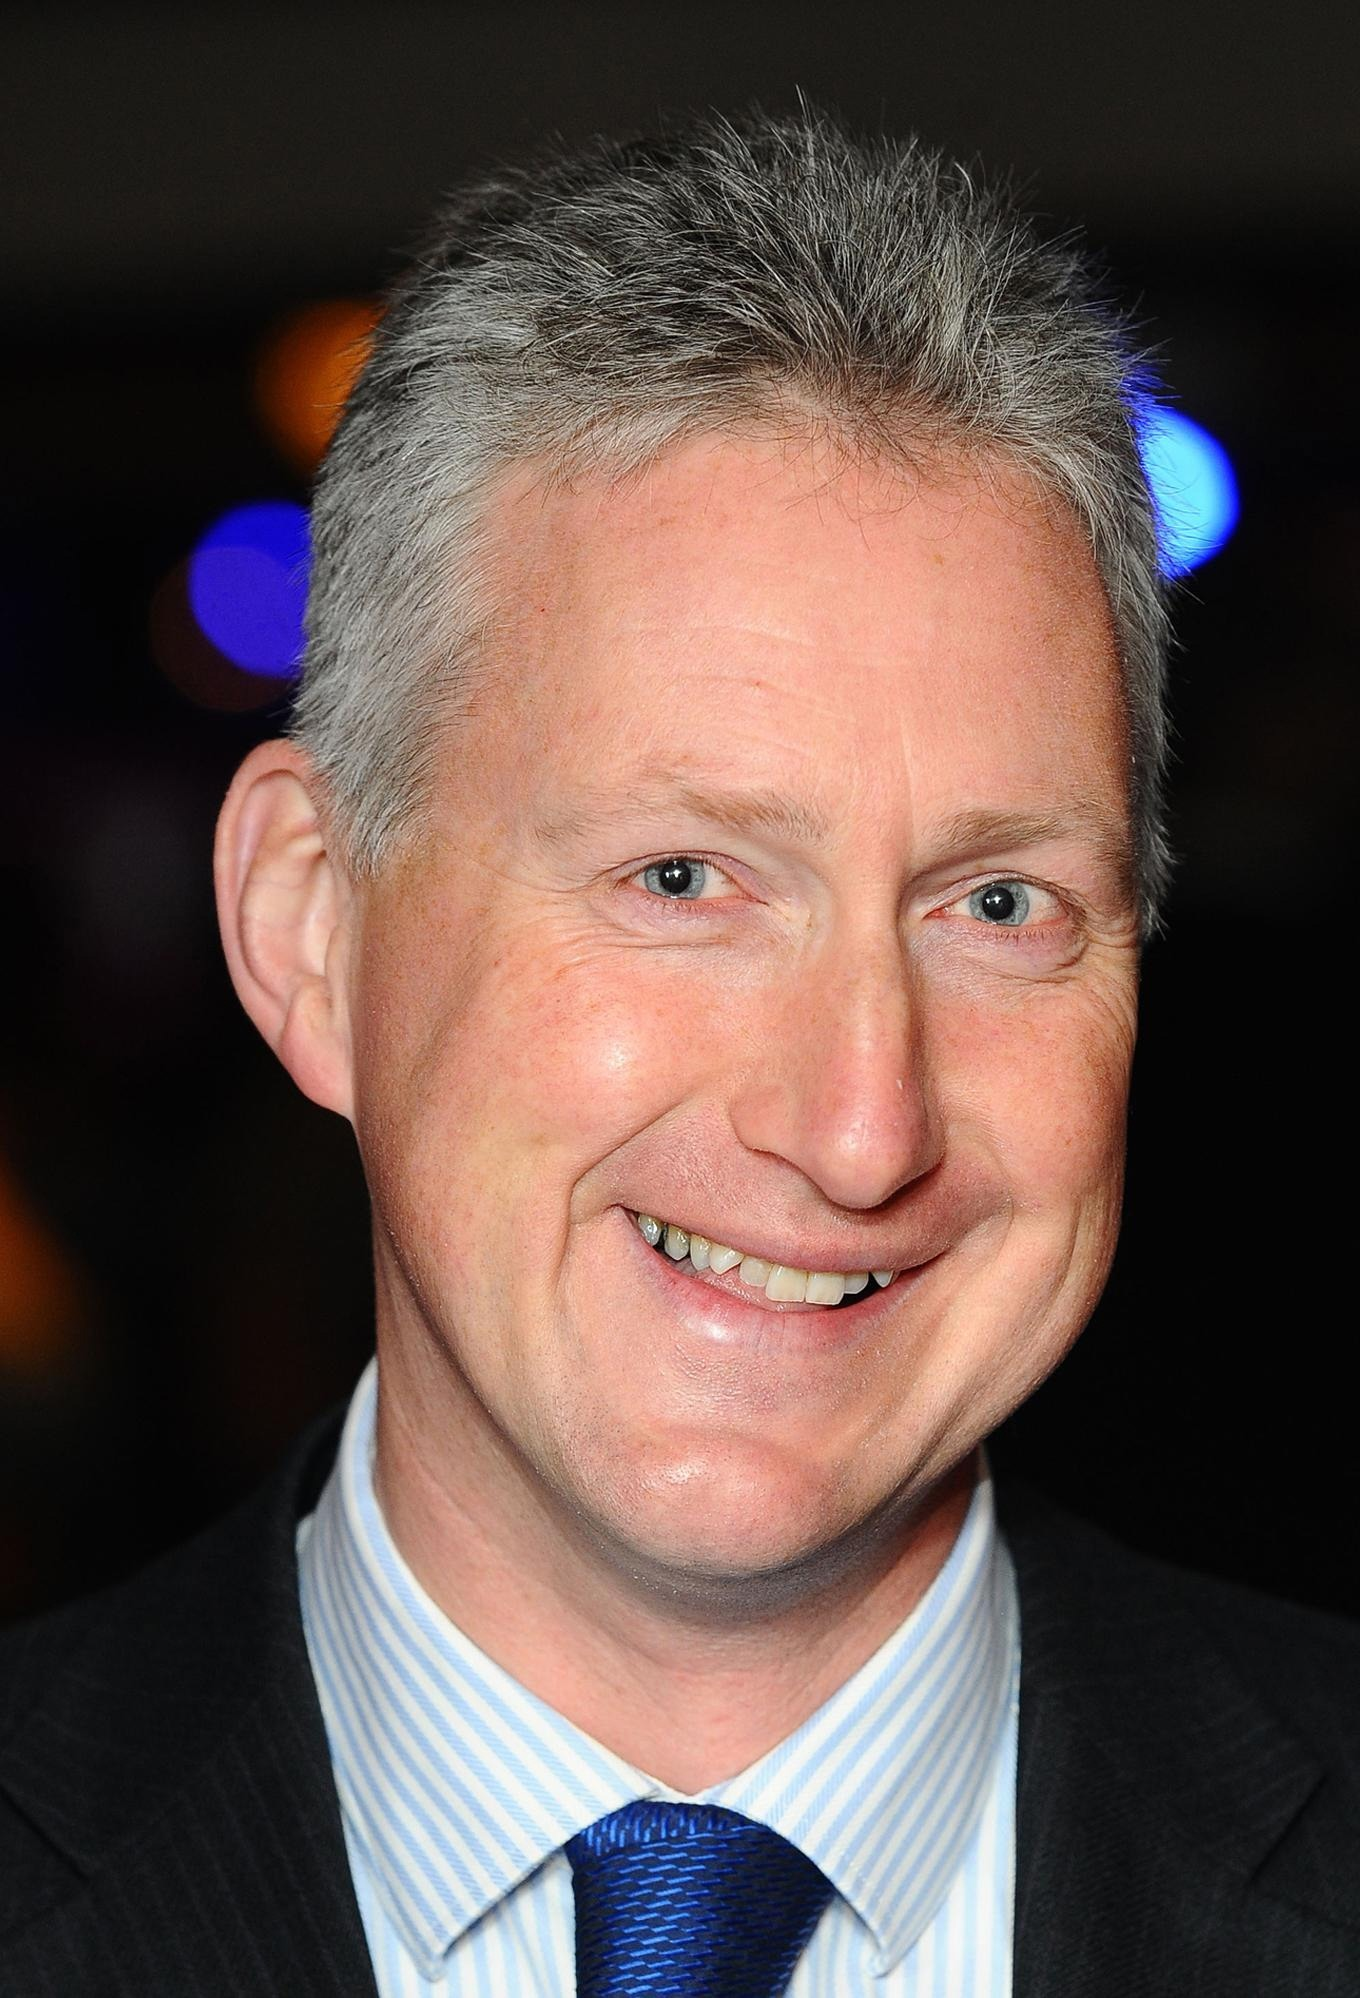 Lembit Opik has been voted leader of Asgard's parliament.